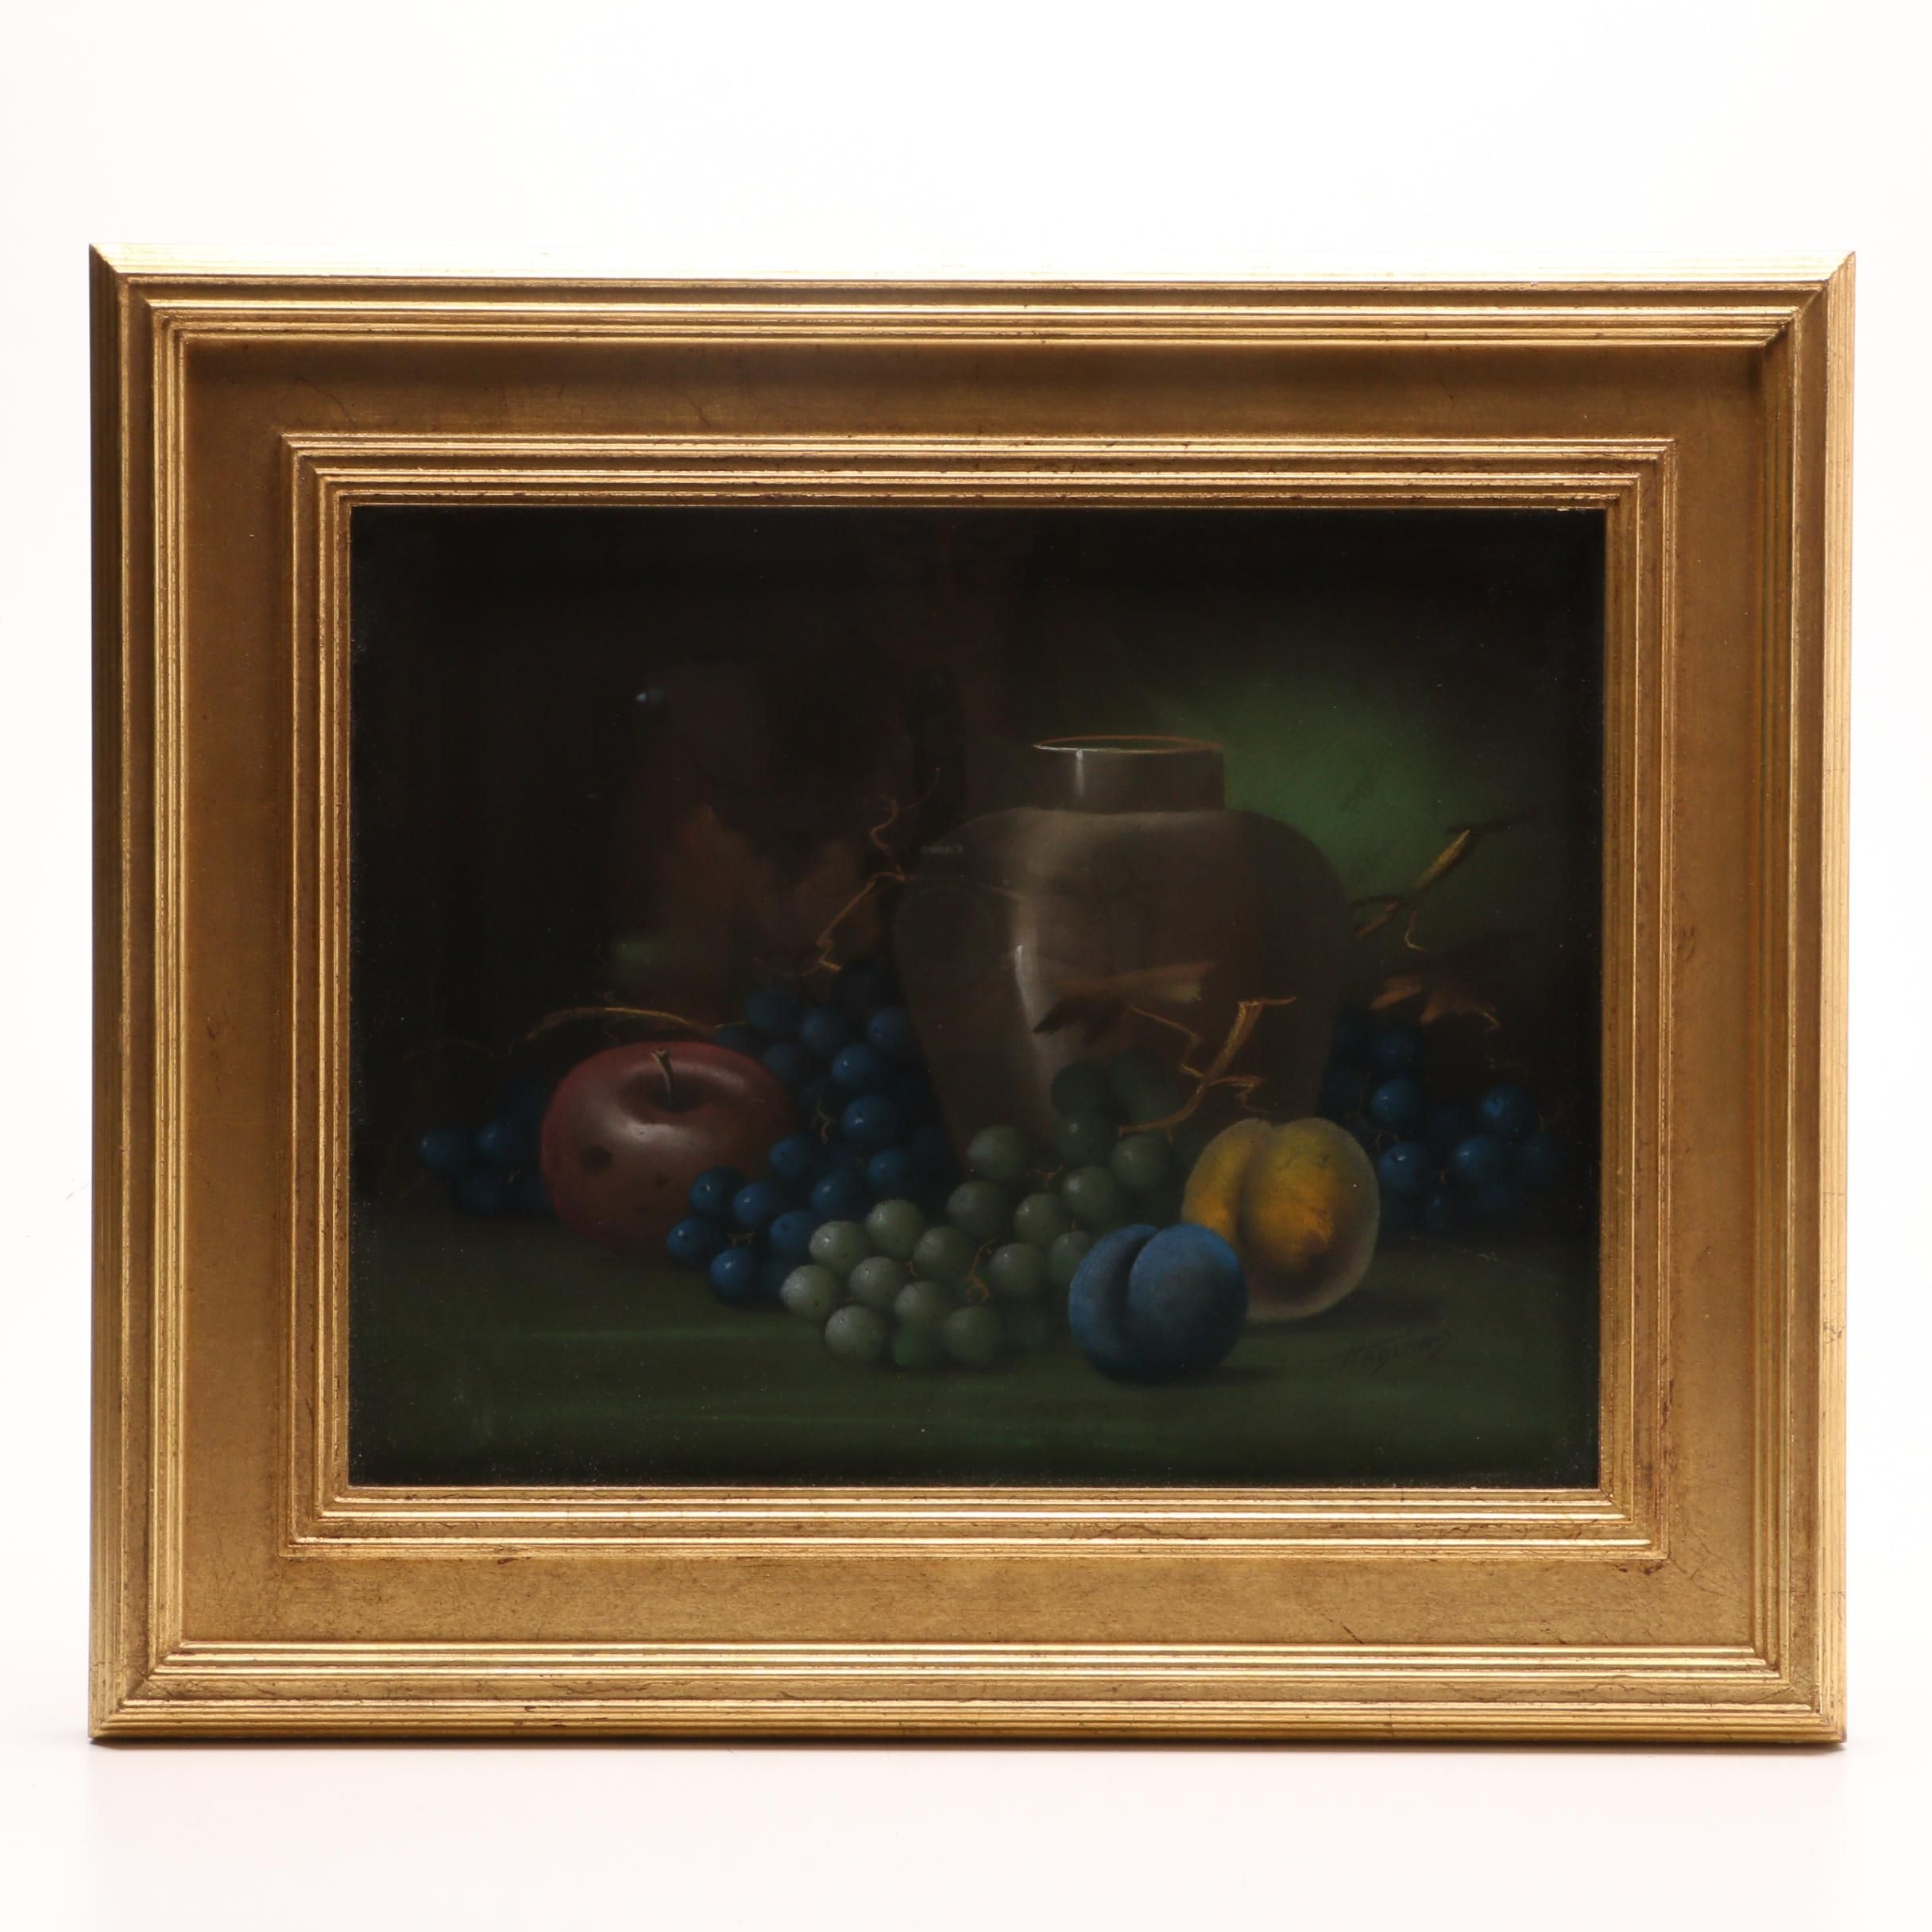 "George Hadland Pastel Drawing ""Still Life with Grapes and Jar"""